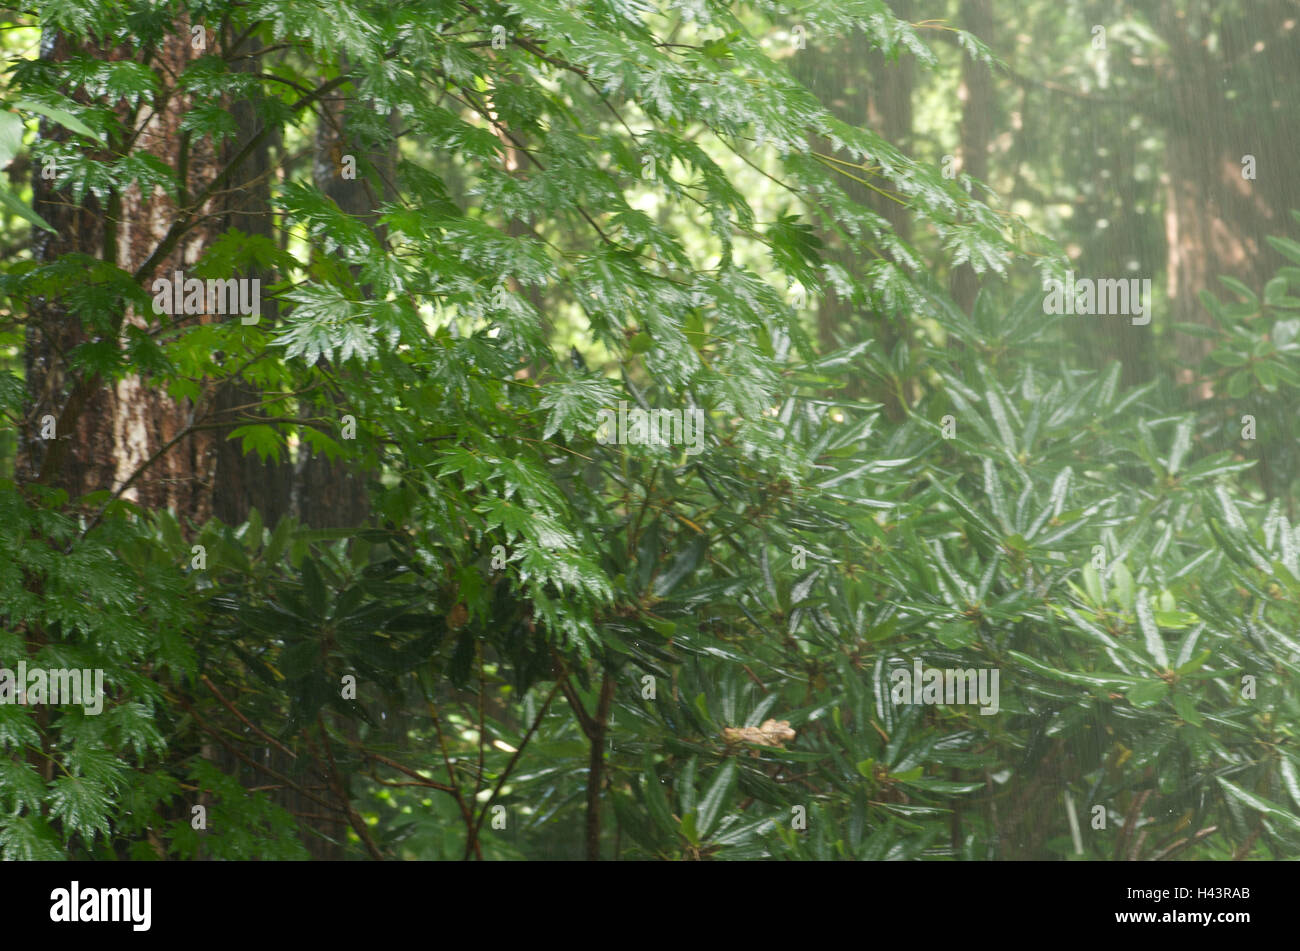 Wood, rhododendron, shower, plants, botany, rain, green, monsoon, rainfall, garden, nature, growth, nobody, - Stock Image